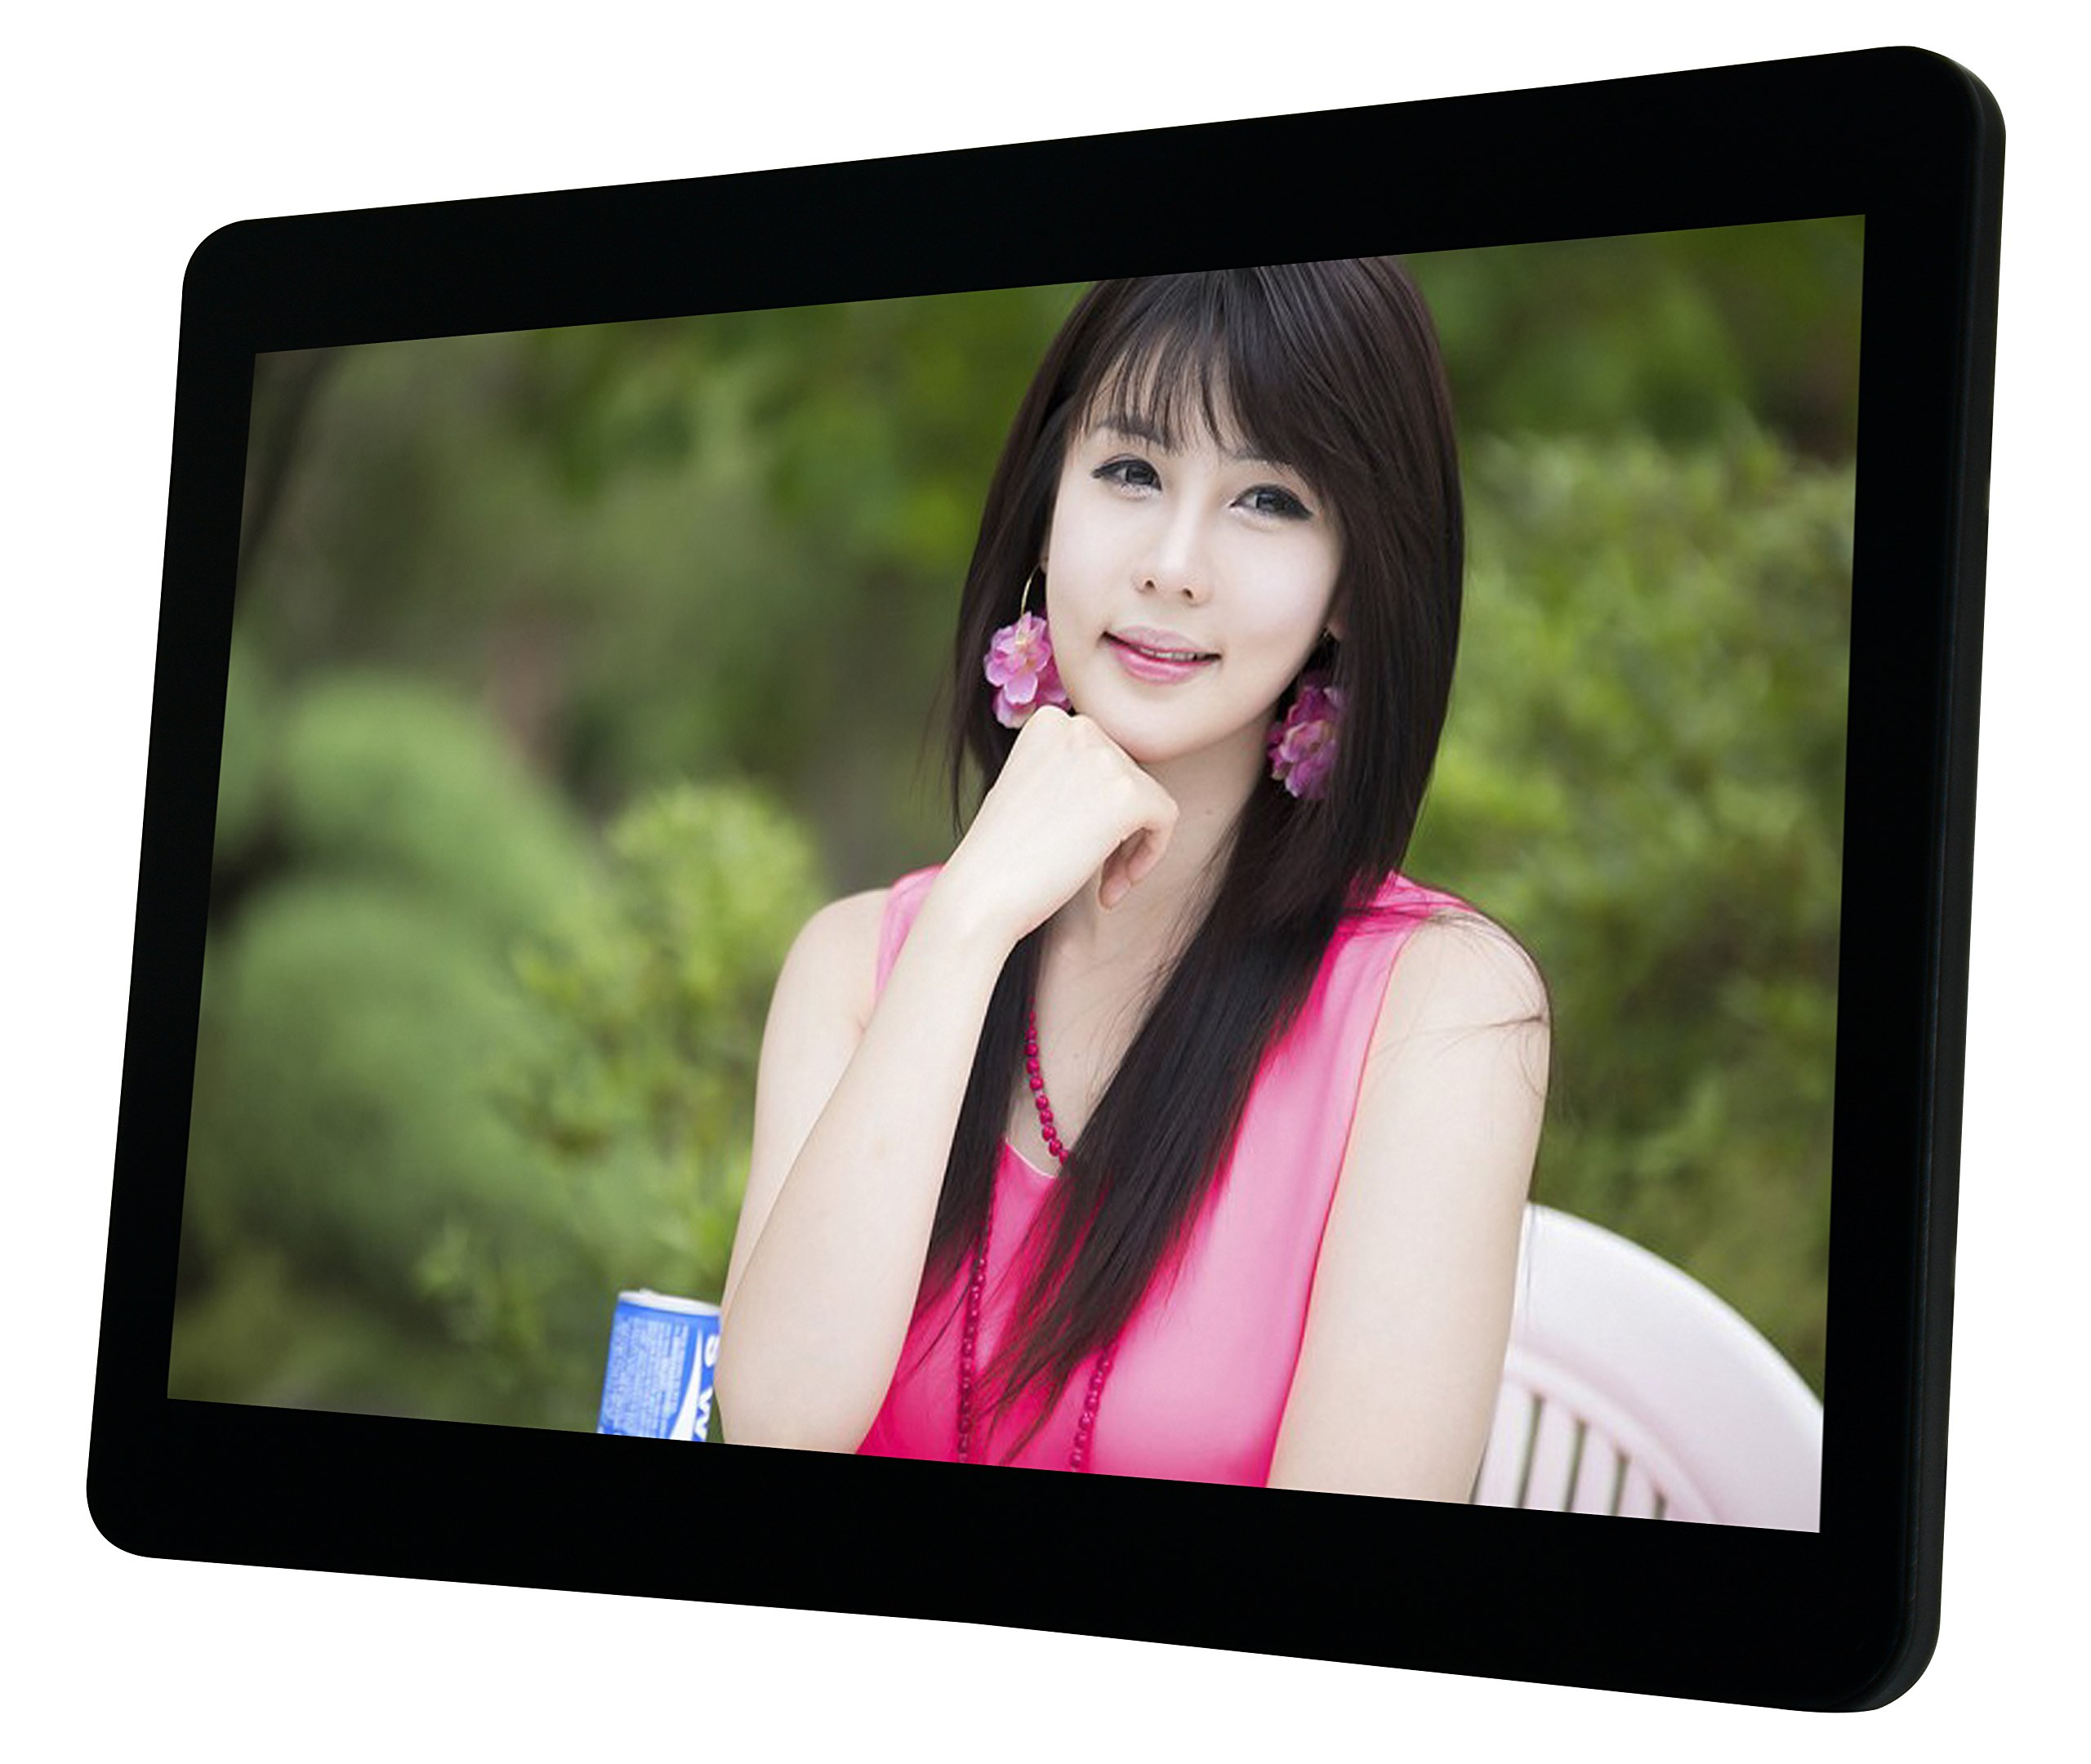 11.6'' HD LCD Screen Advertising Media Video Player - [Strong Metal Frame] - Compatible with SD card or USB 2.0 - Remote control Included